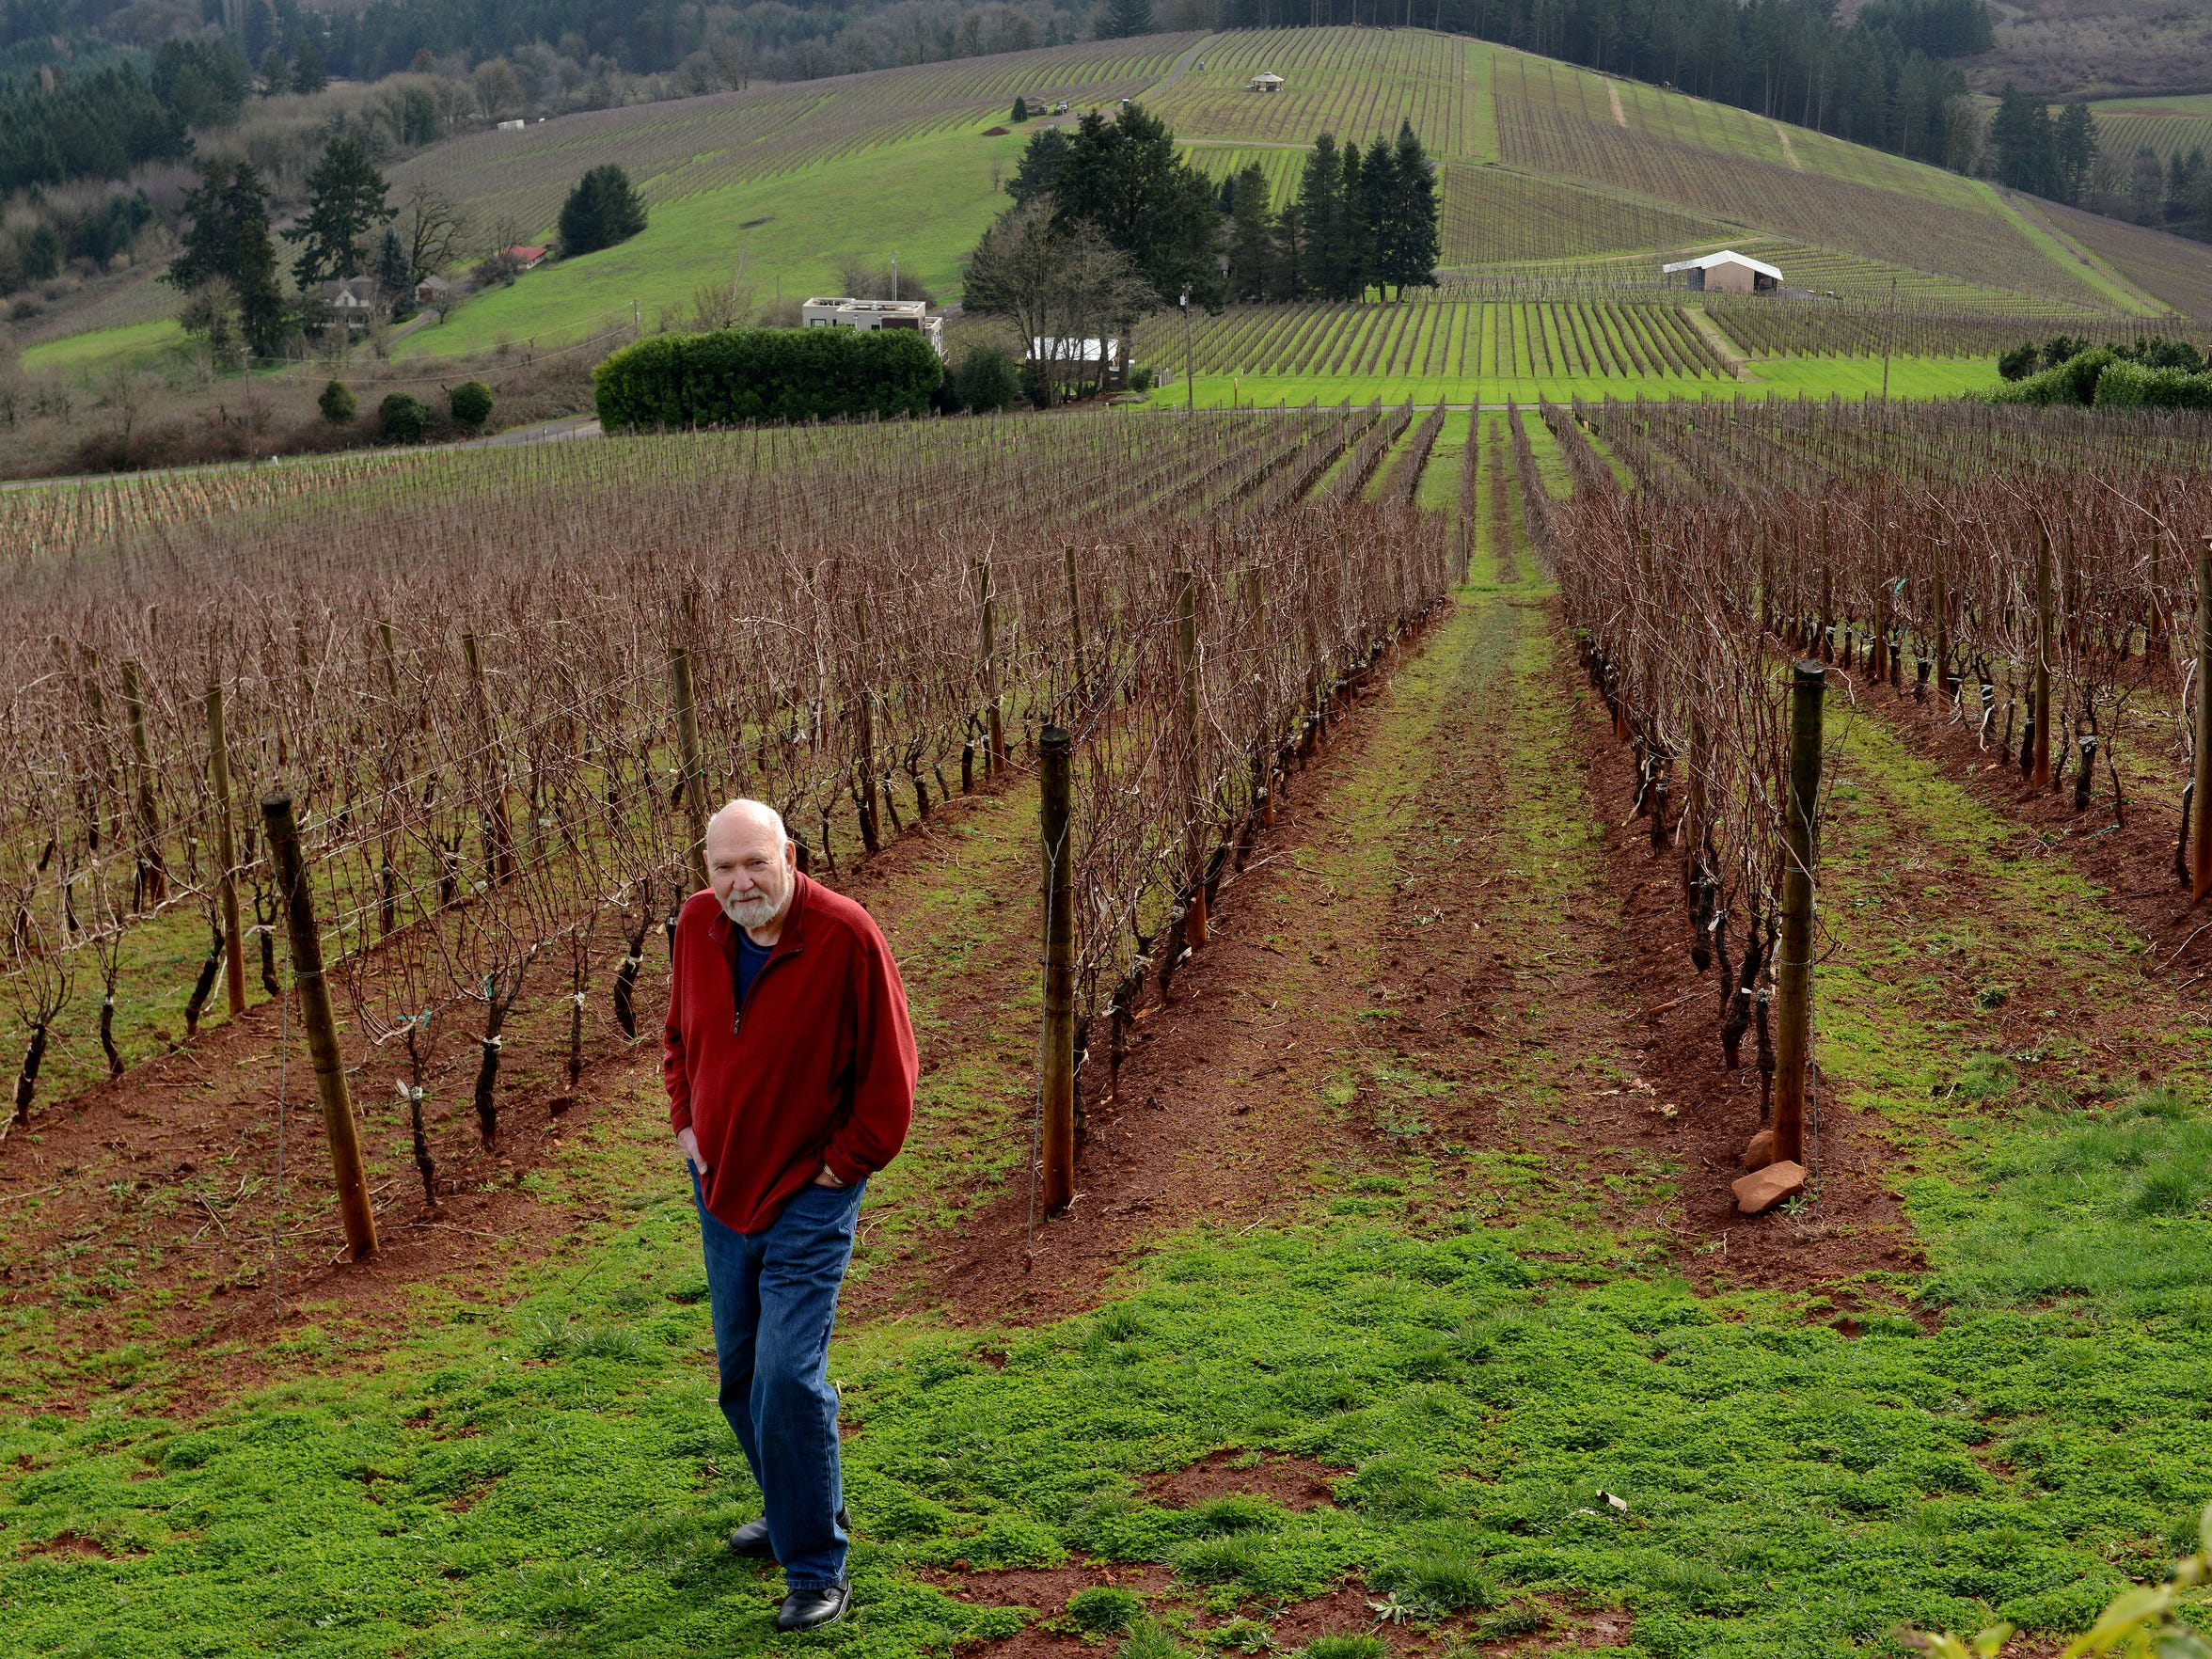 Dick Erath, one of the pioneers of pinot noir in the